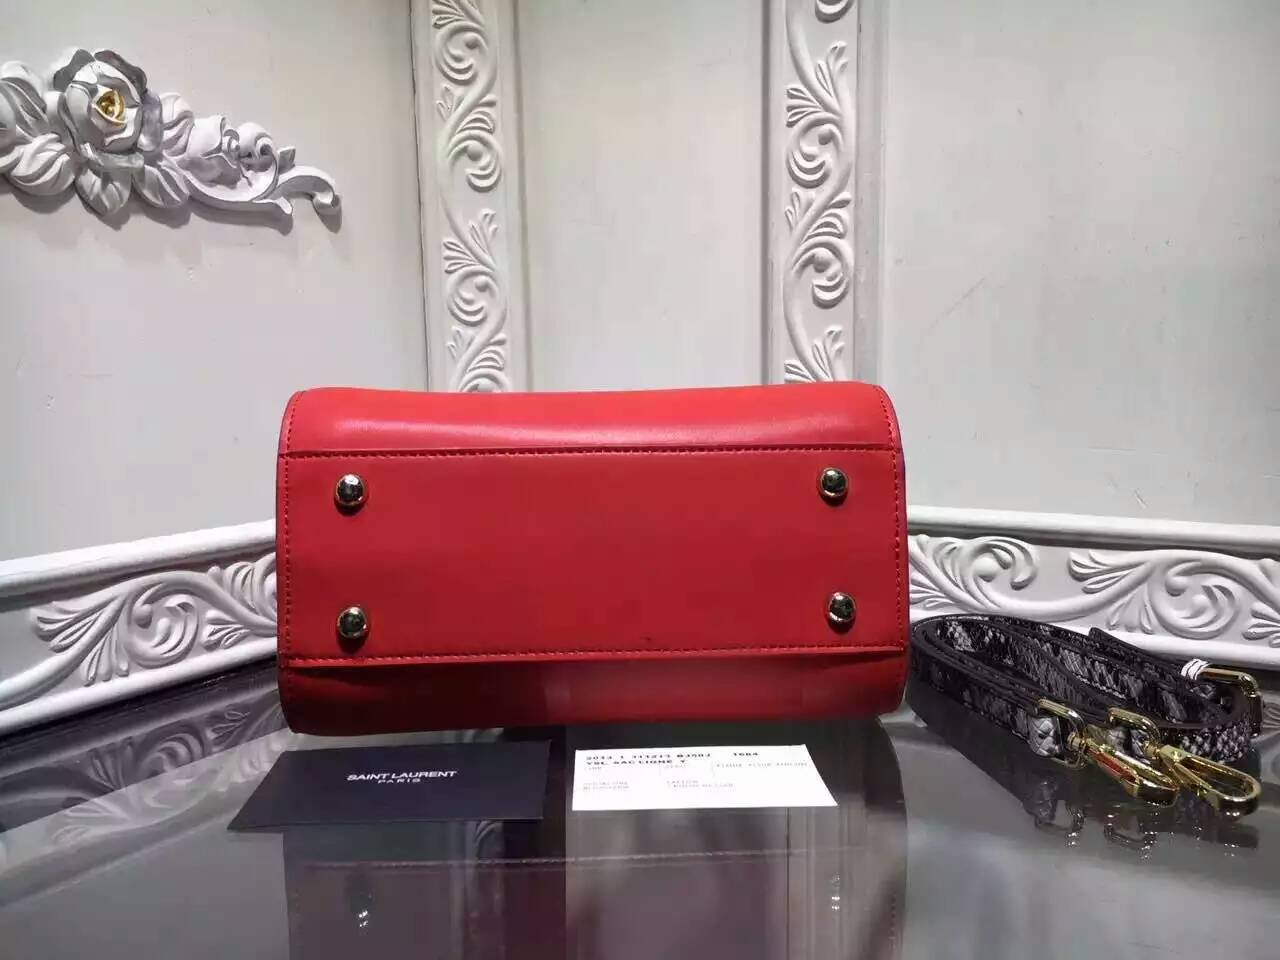 2016 New Saint Laurent Bag Cheap Sale-Saint Laurent Medium Classic Sac De Jour Bag in Red Calfskin and Python Embossed Leather